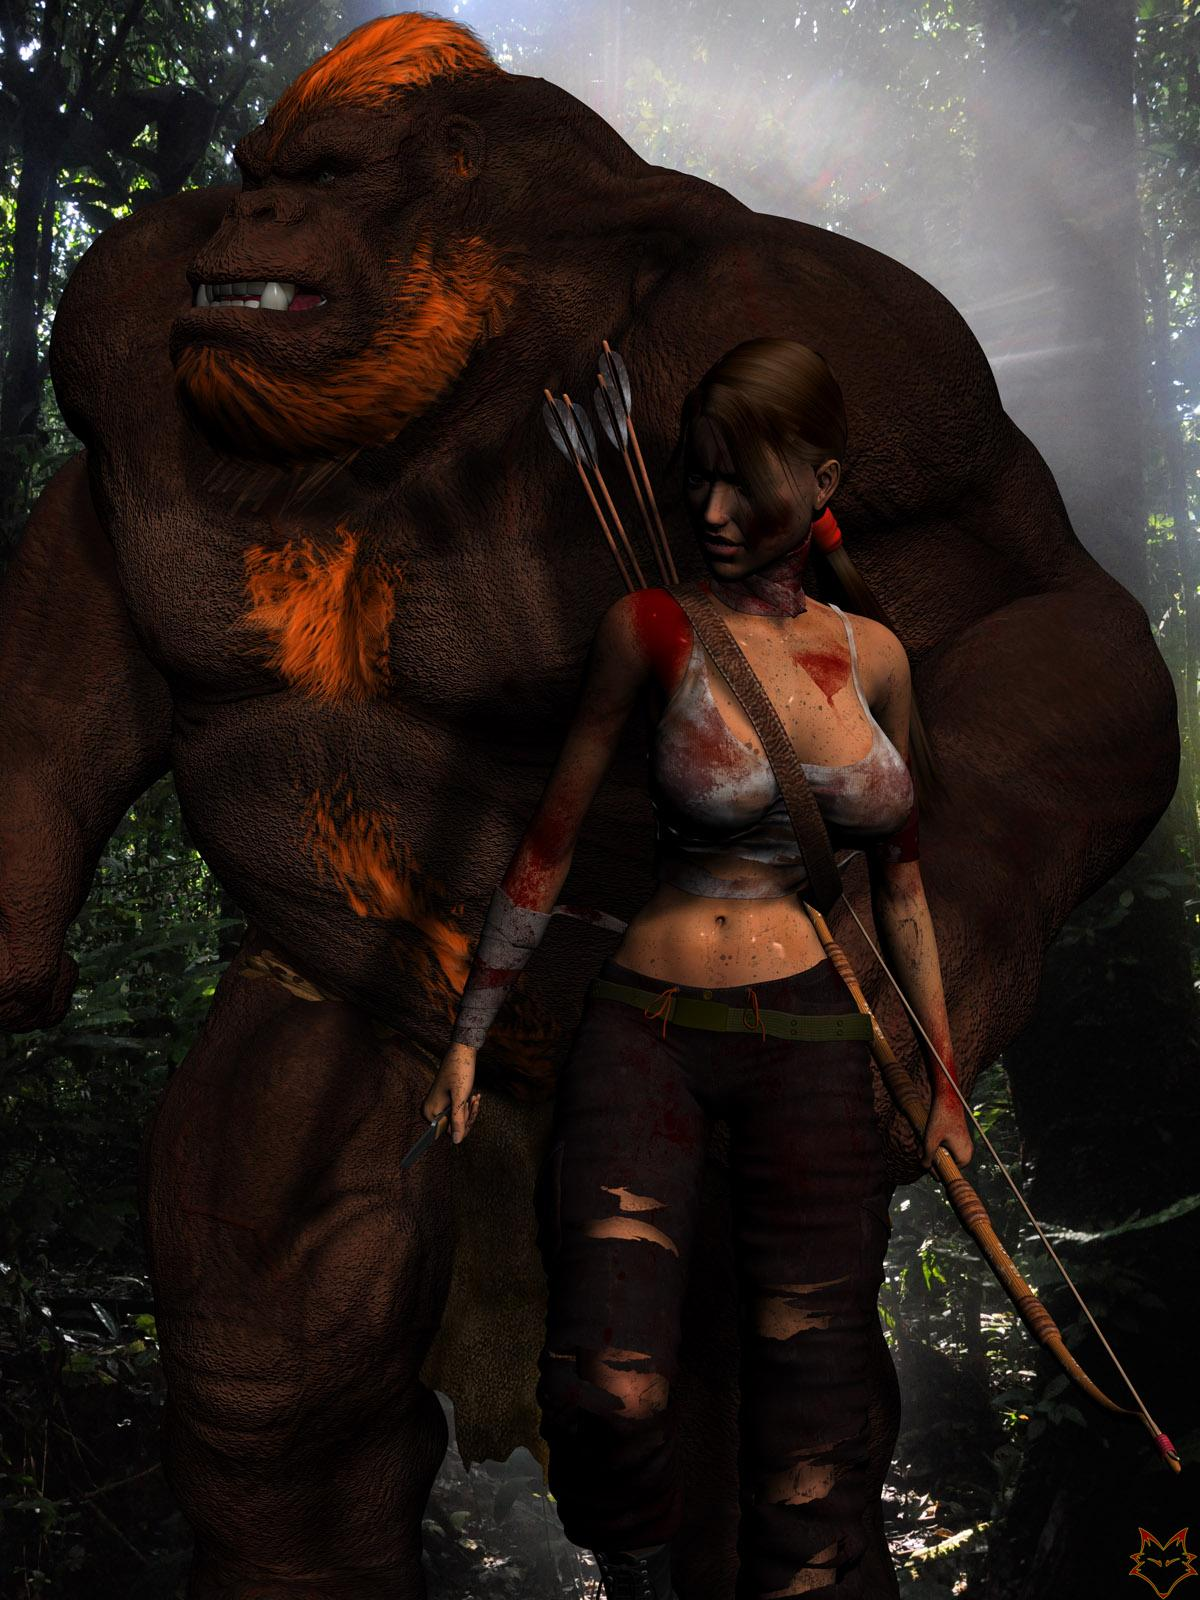 LARA AND THE HELPFULL YETI